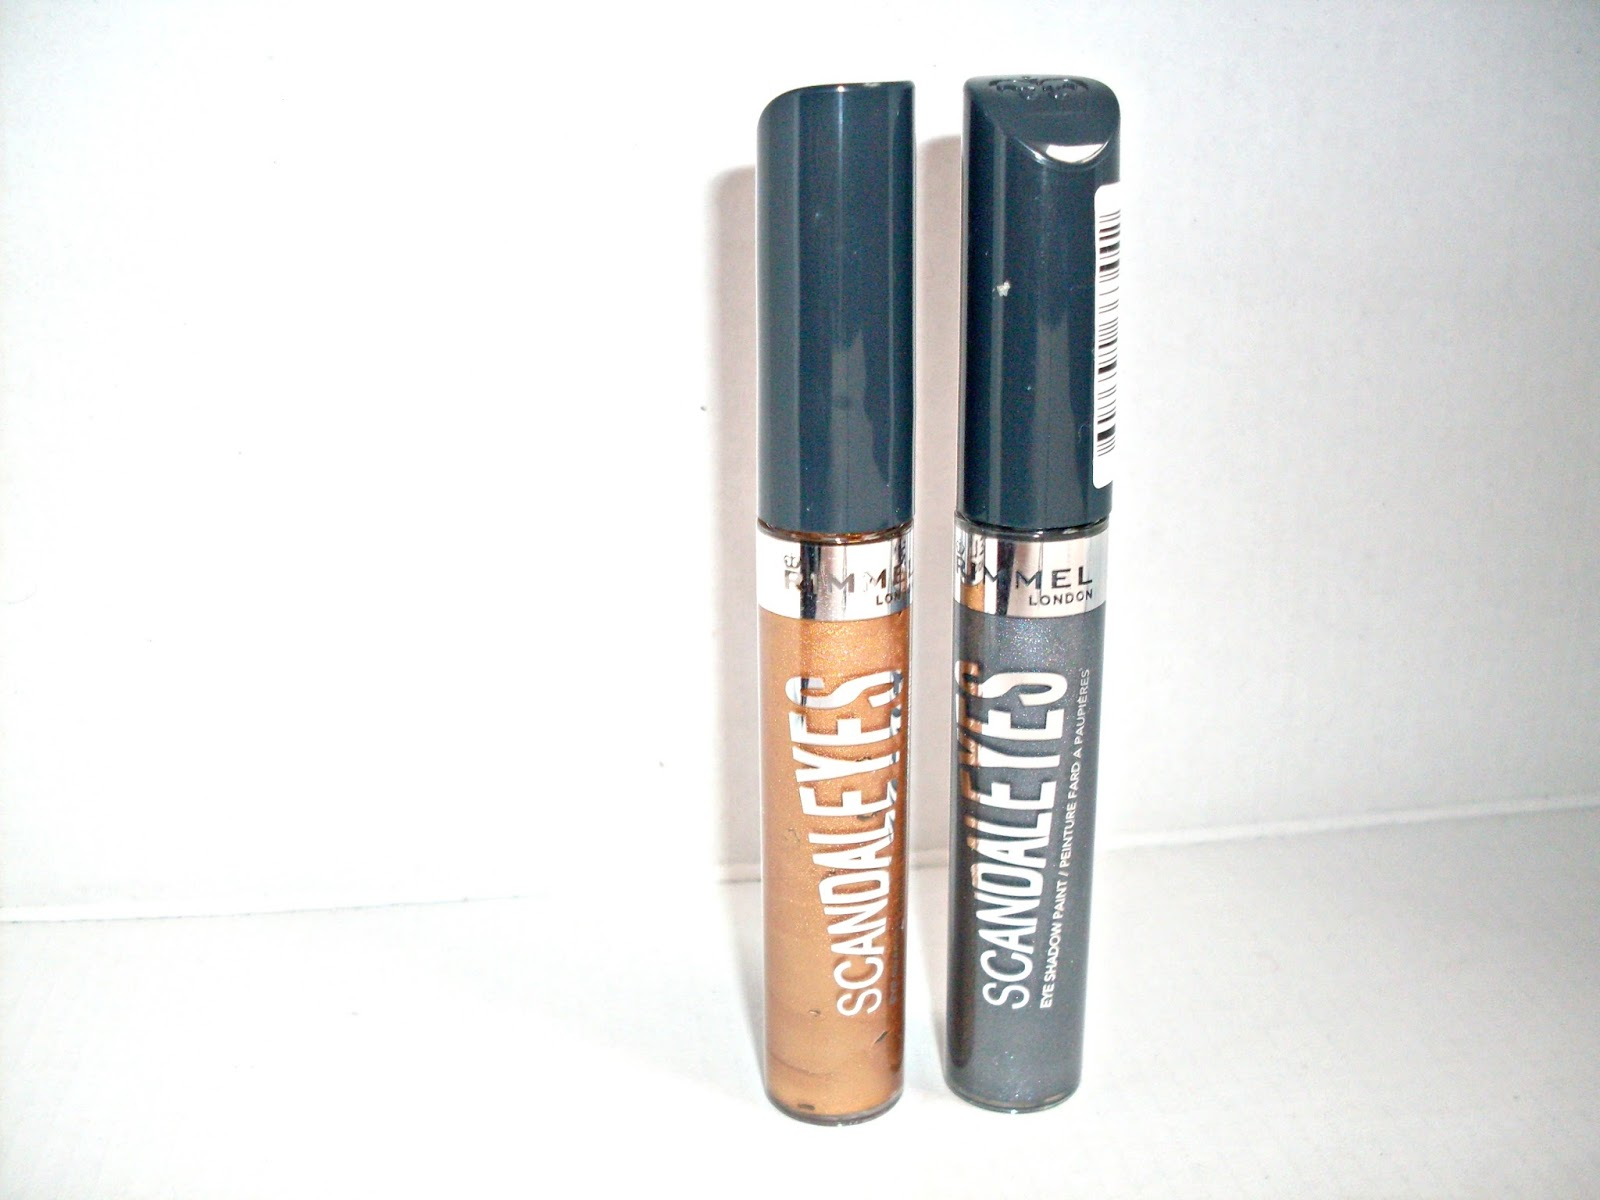 Rimmel Scandaleyes eyeshadow paint in golden bronze and slate grey